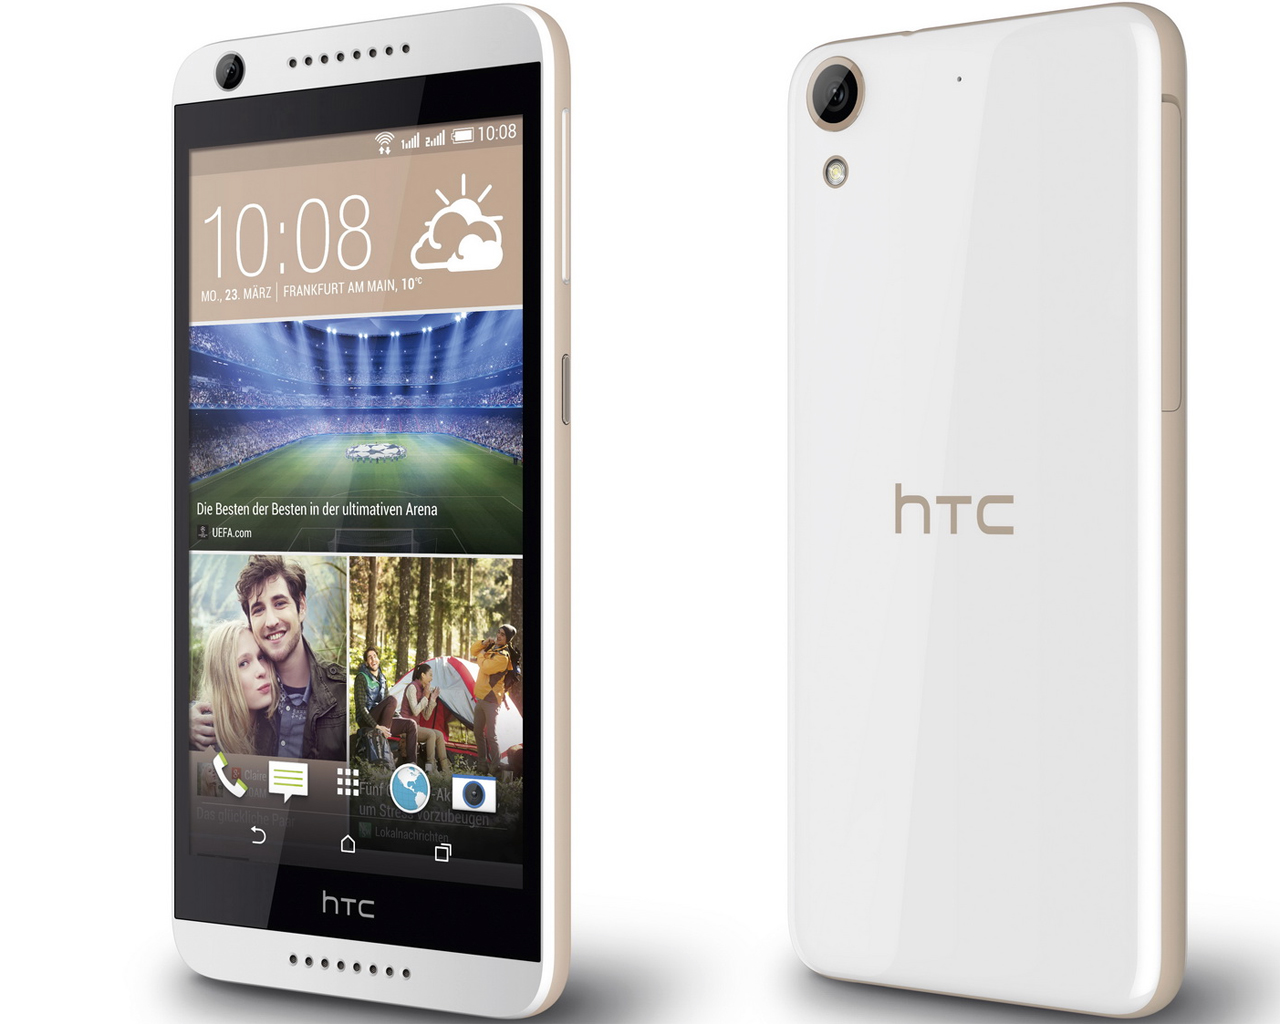 HTC Desire 626G Dual SIM Smartphone Review - NotebookCheck ...